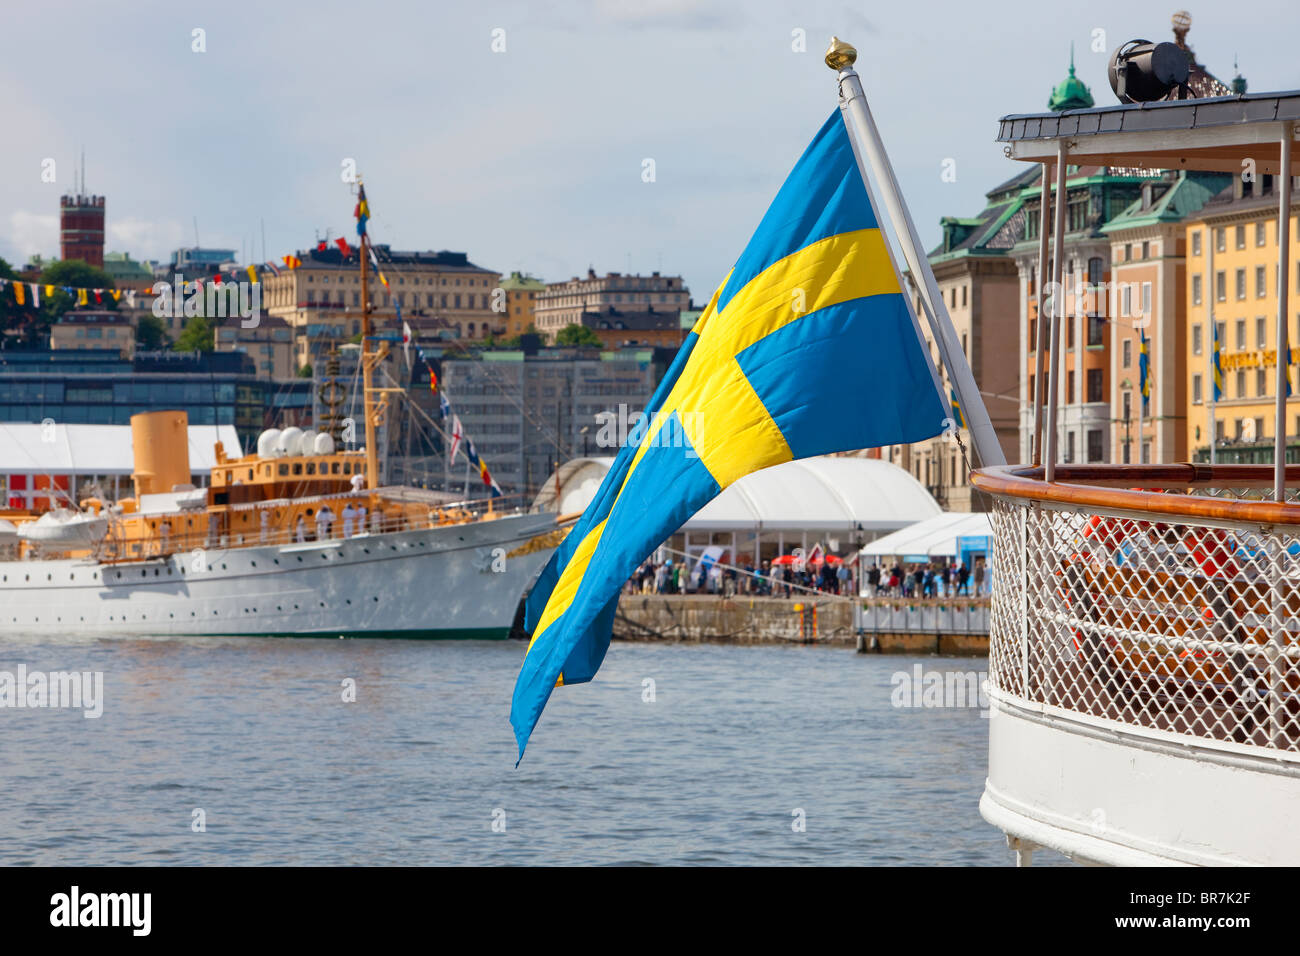 Sweden Stockholm - Swedish flag on one of the many boats anchored at The Old Town - Gamla Stan - Stock Image